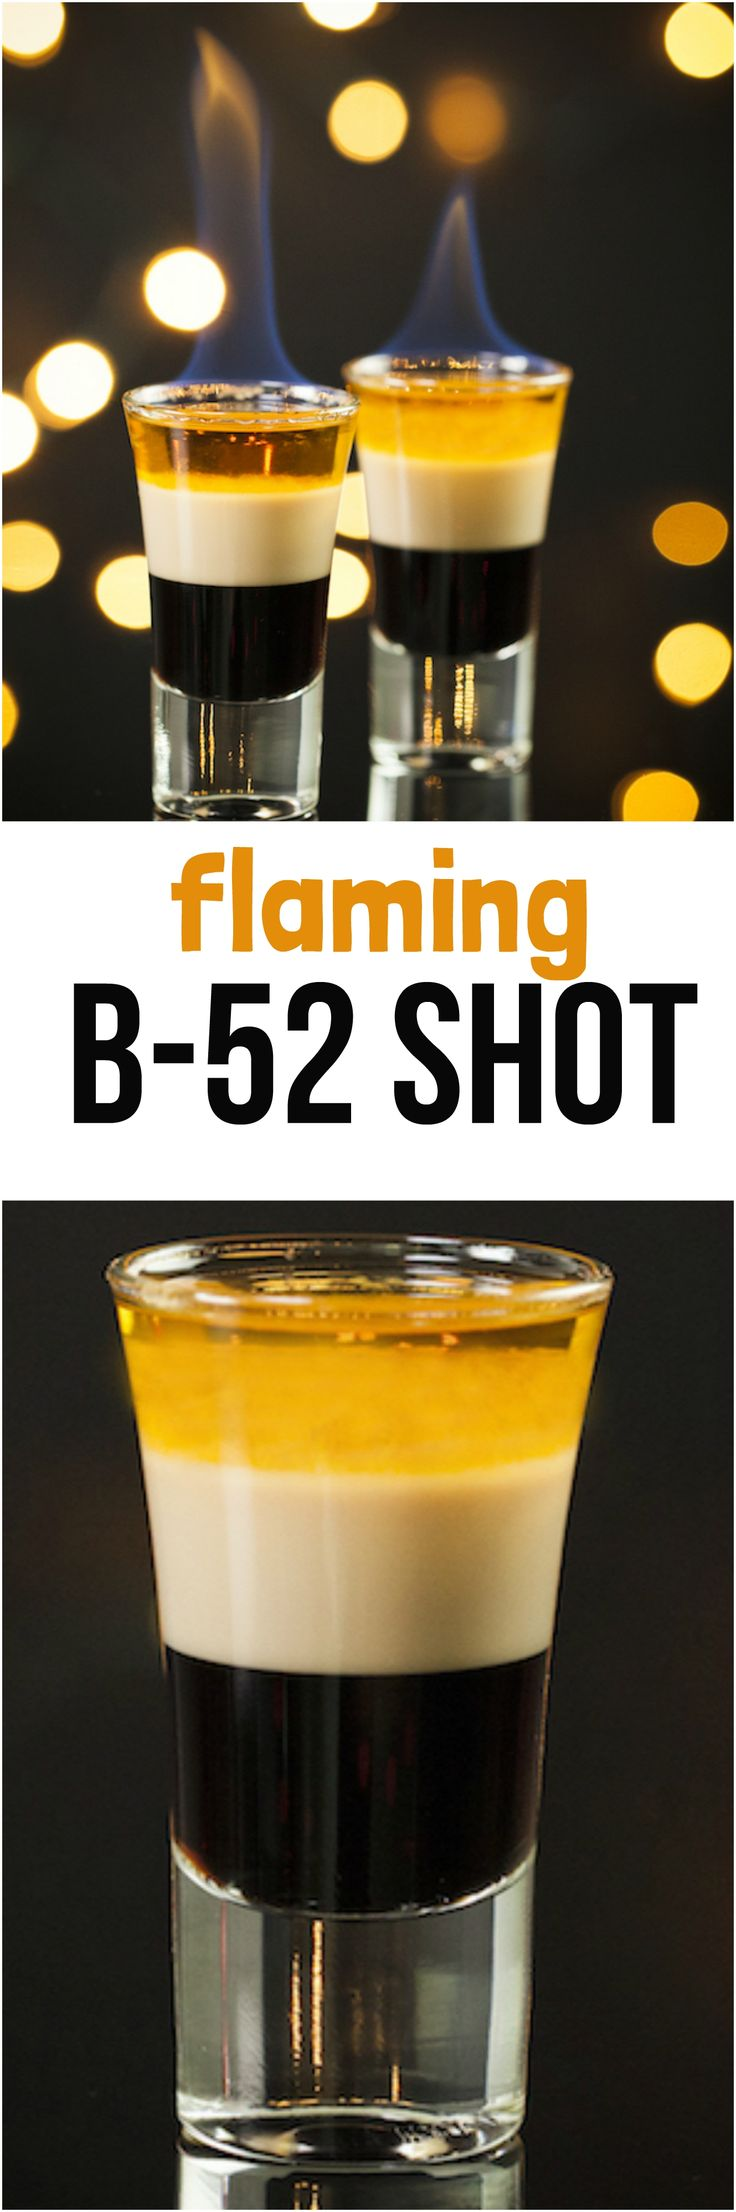 Sweet, creamy, and a little bit dangerous, the flaming B-52 shot has three layers and a conversation-starting backstory. We'll show you how to pour coffee liqueur, Irish cream, and orange liqueur just right to create a stacked shot that never bombs at parties.